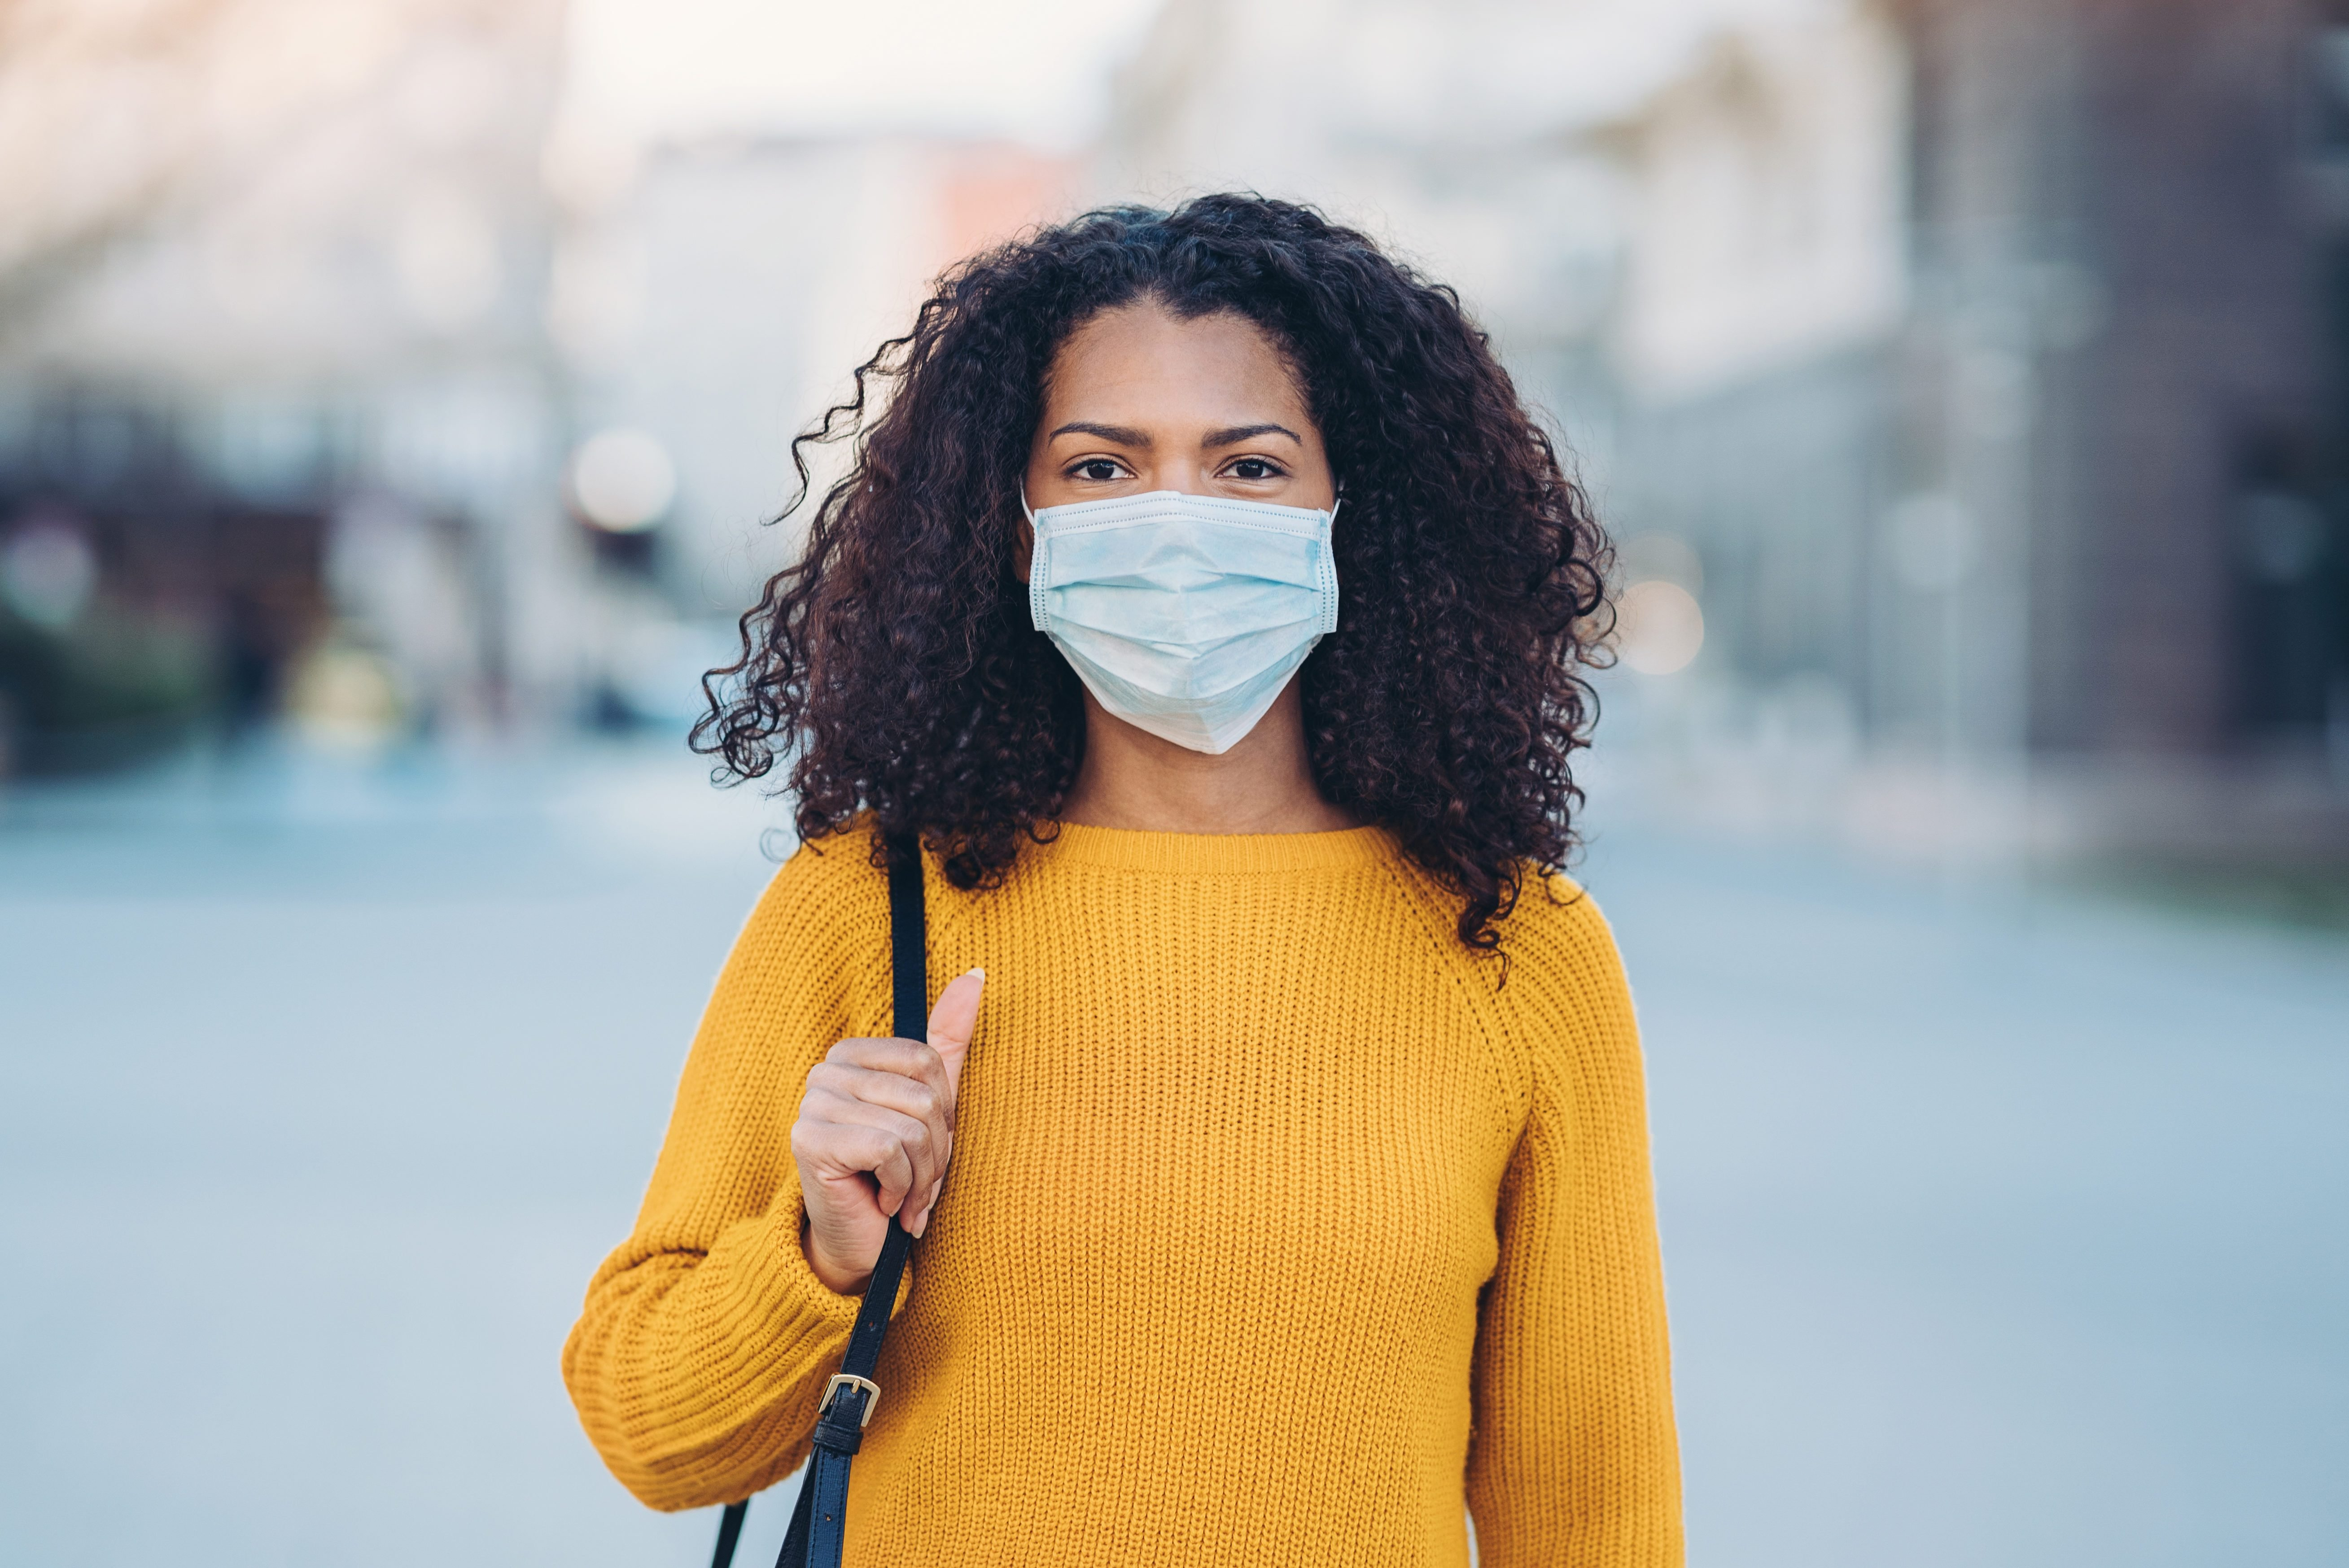 Young woman with a mask during pandemic